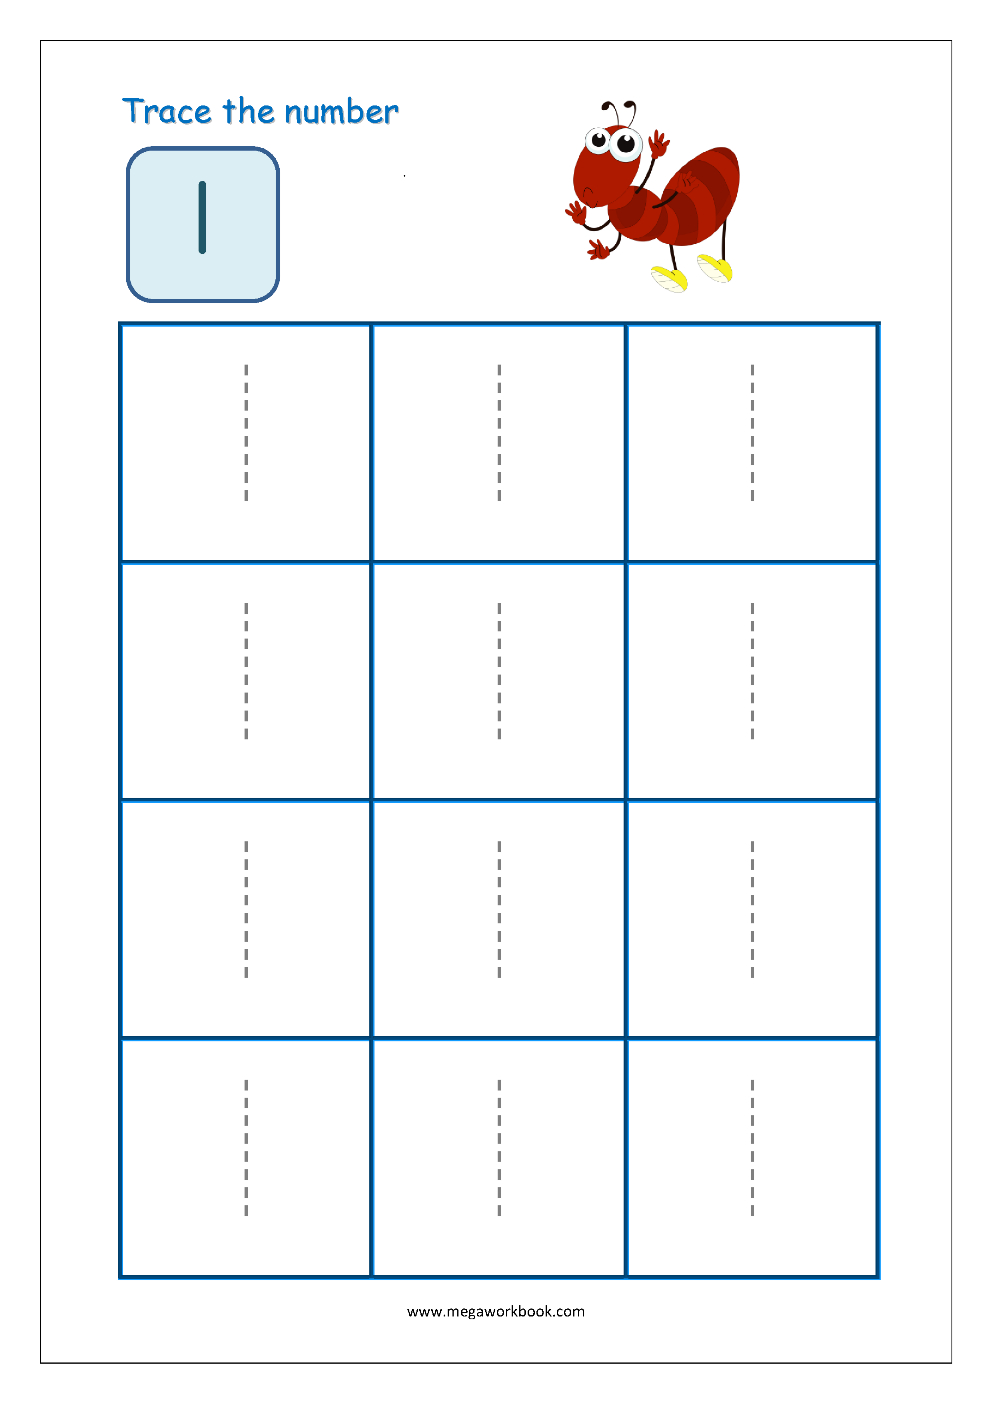 Number Tracing - Tracing Numbers - Number Tracing Worksheets inside Tracing Letter 1